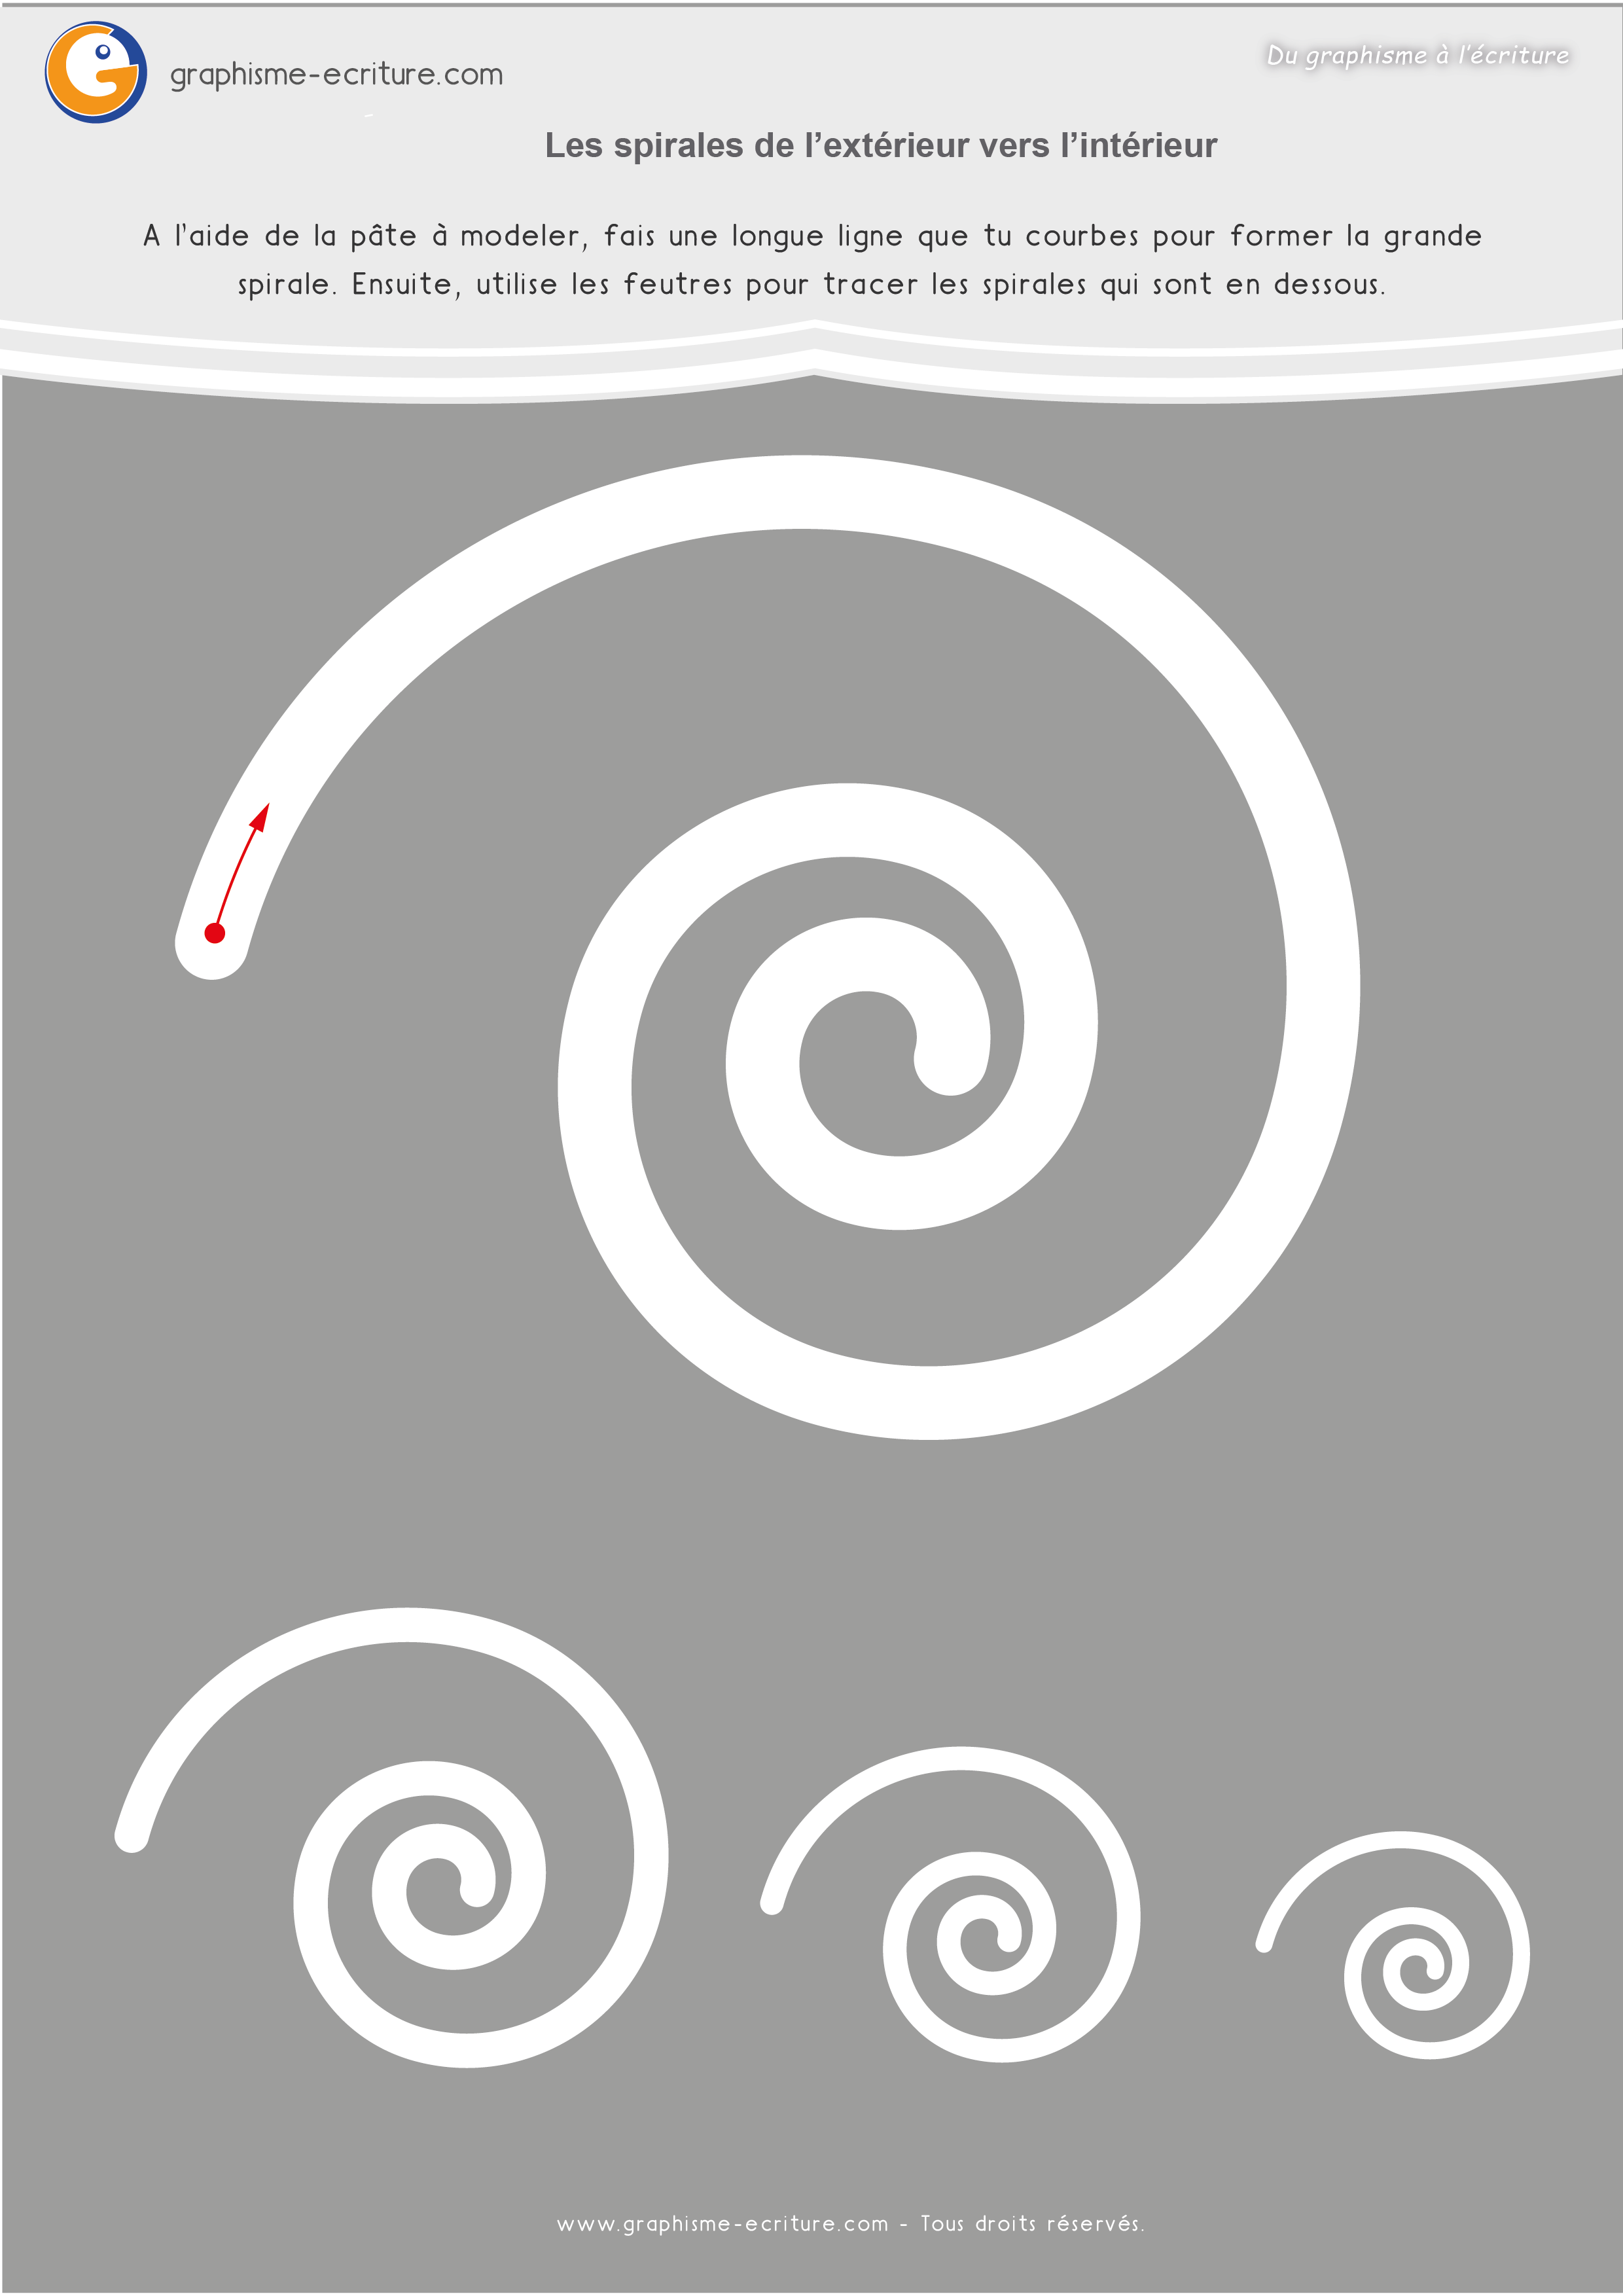 Graphisme moyenne section spirale fiches plastifier for Interieur a la spirale